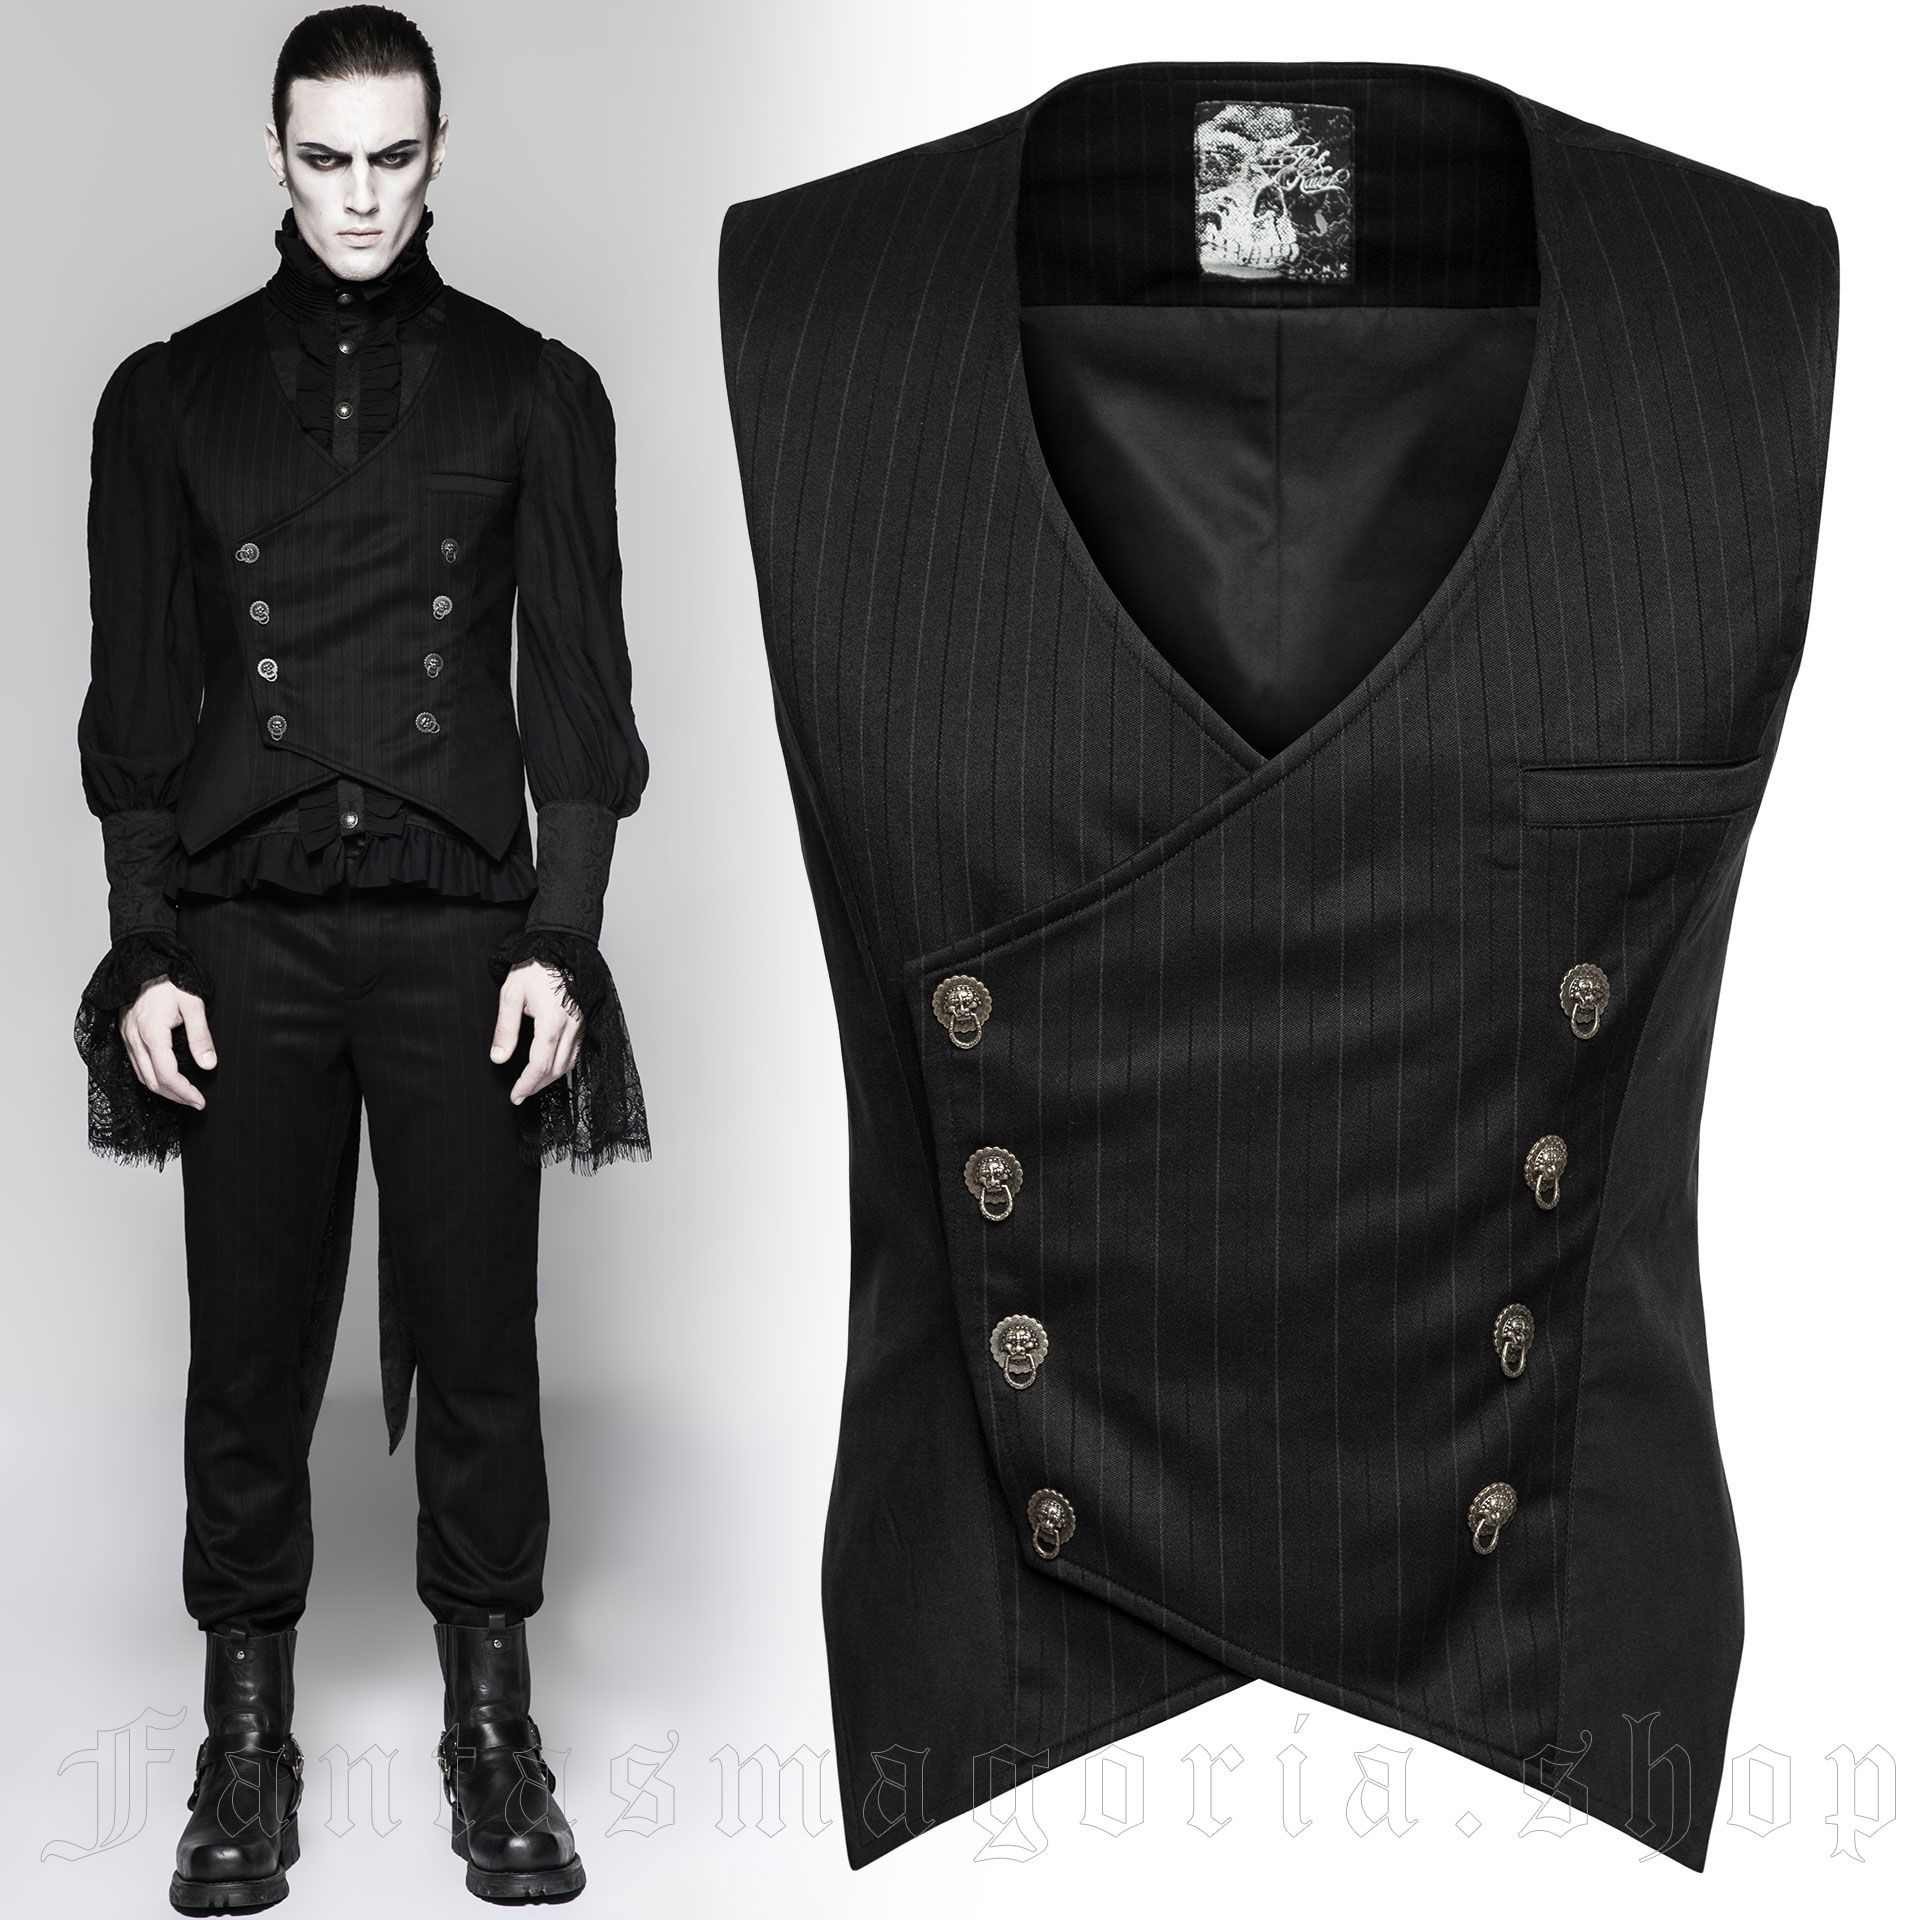 men's Cagliostro Vest by PUNK RAVE brand, code: Y-754